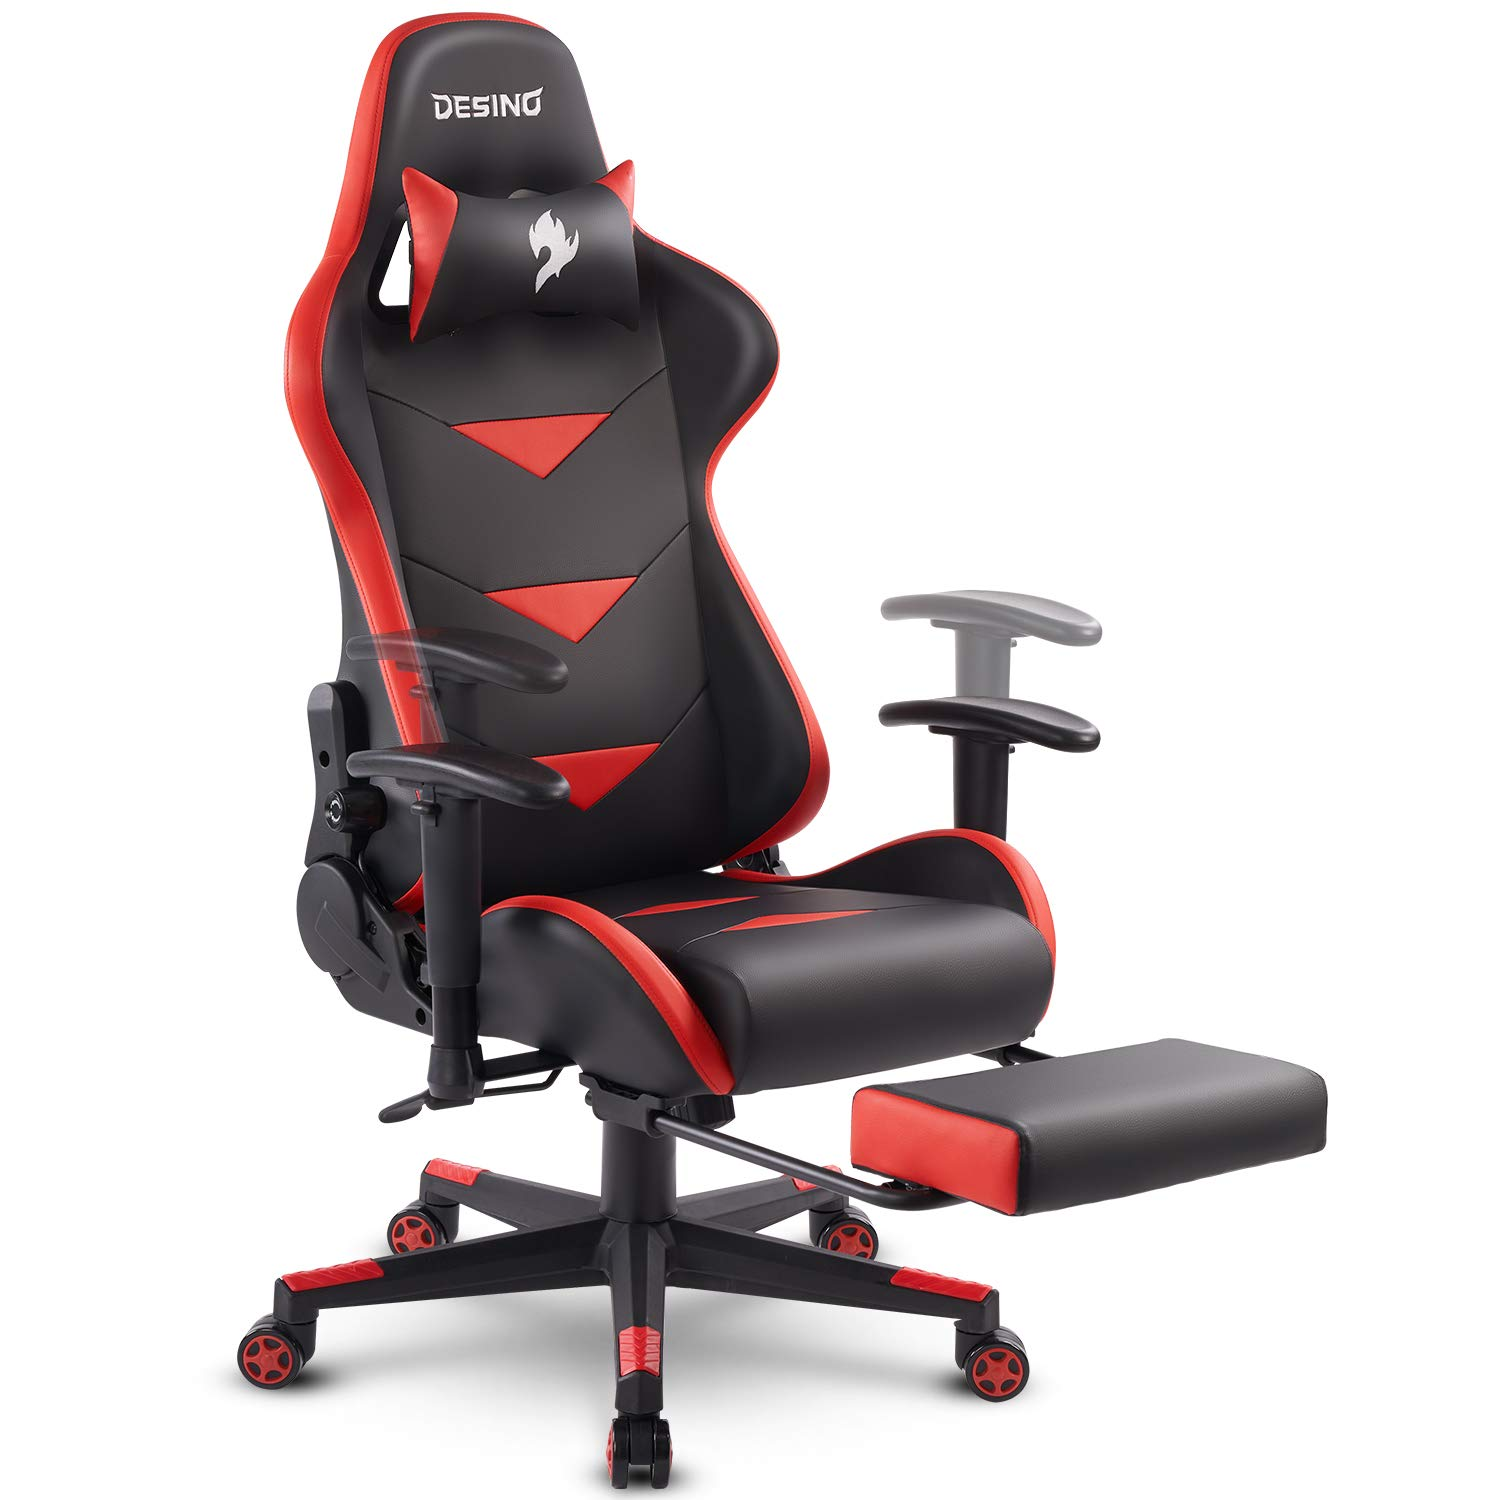 DESINO Gaming Chair Racing Style High Back Computer Chair Swivel Ergonomic Executive Office Leather Chair with Footrest, Adjustable Armrests and Lambar Support (Red)